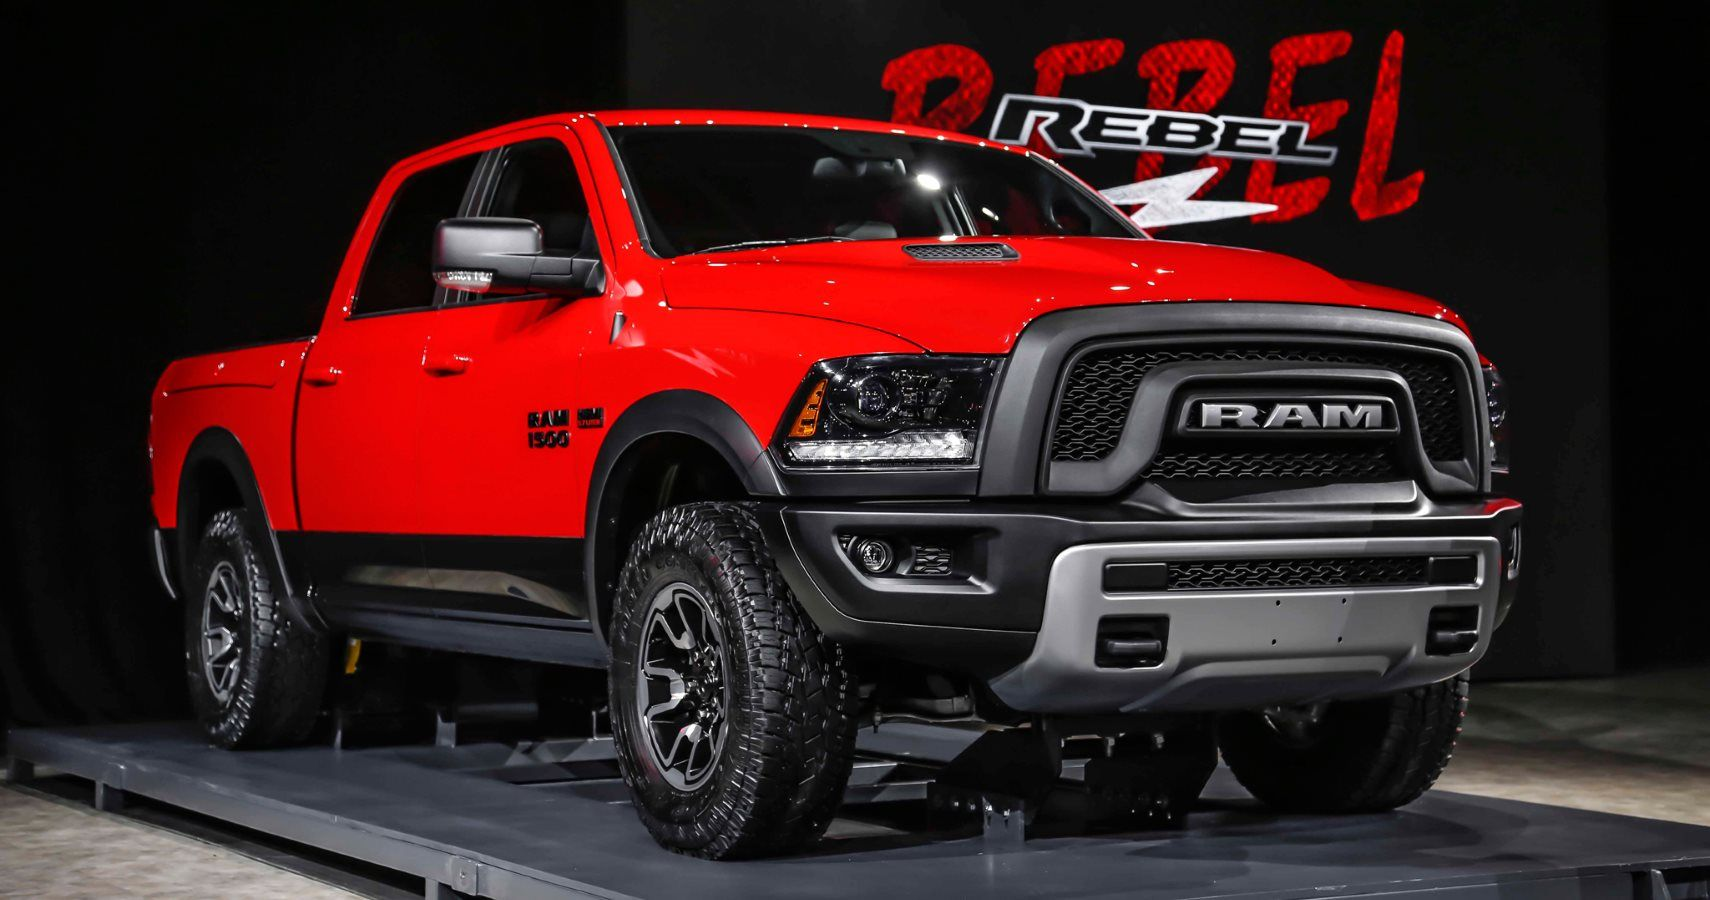 2020 Ram Receives Supercharged Hellcat V8 Engine | HotCars